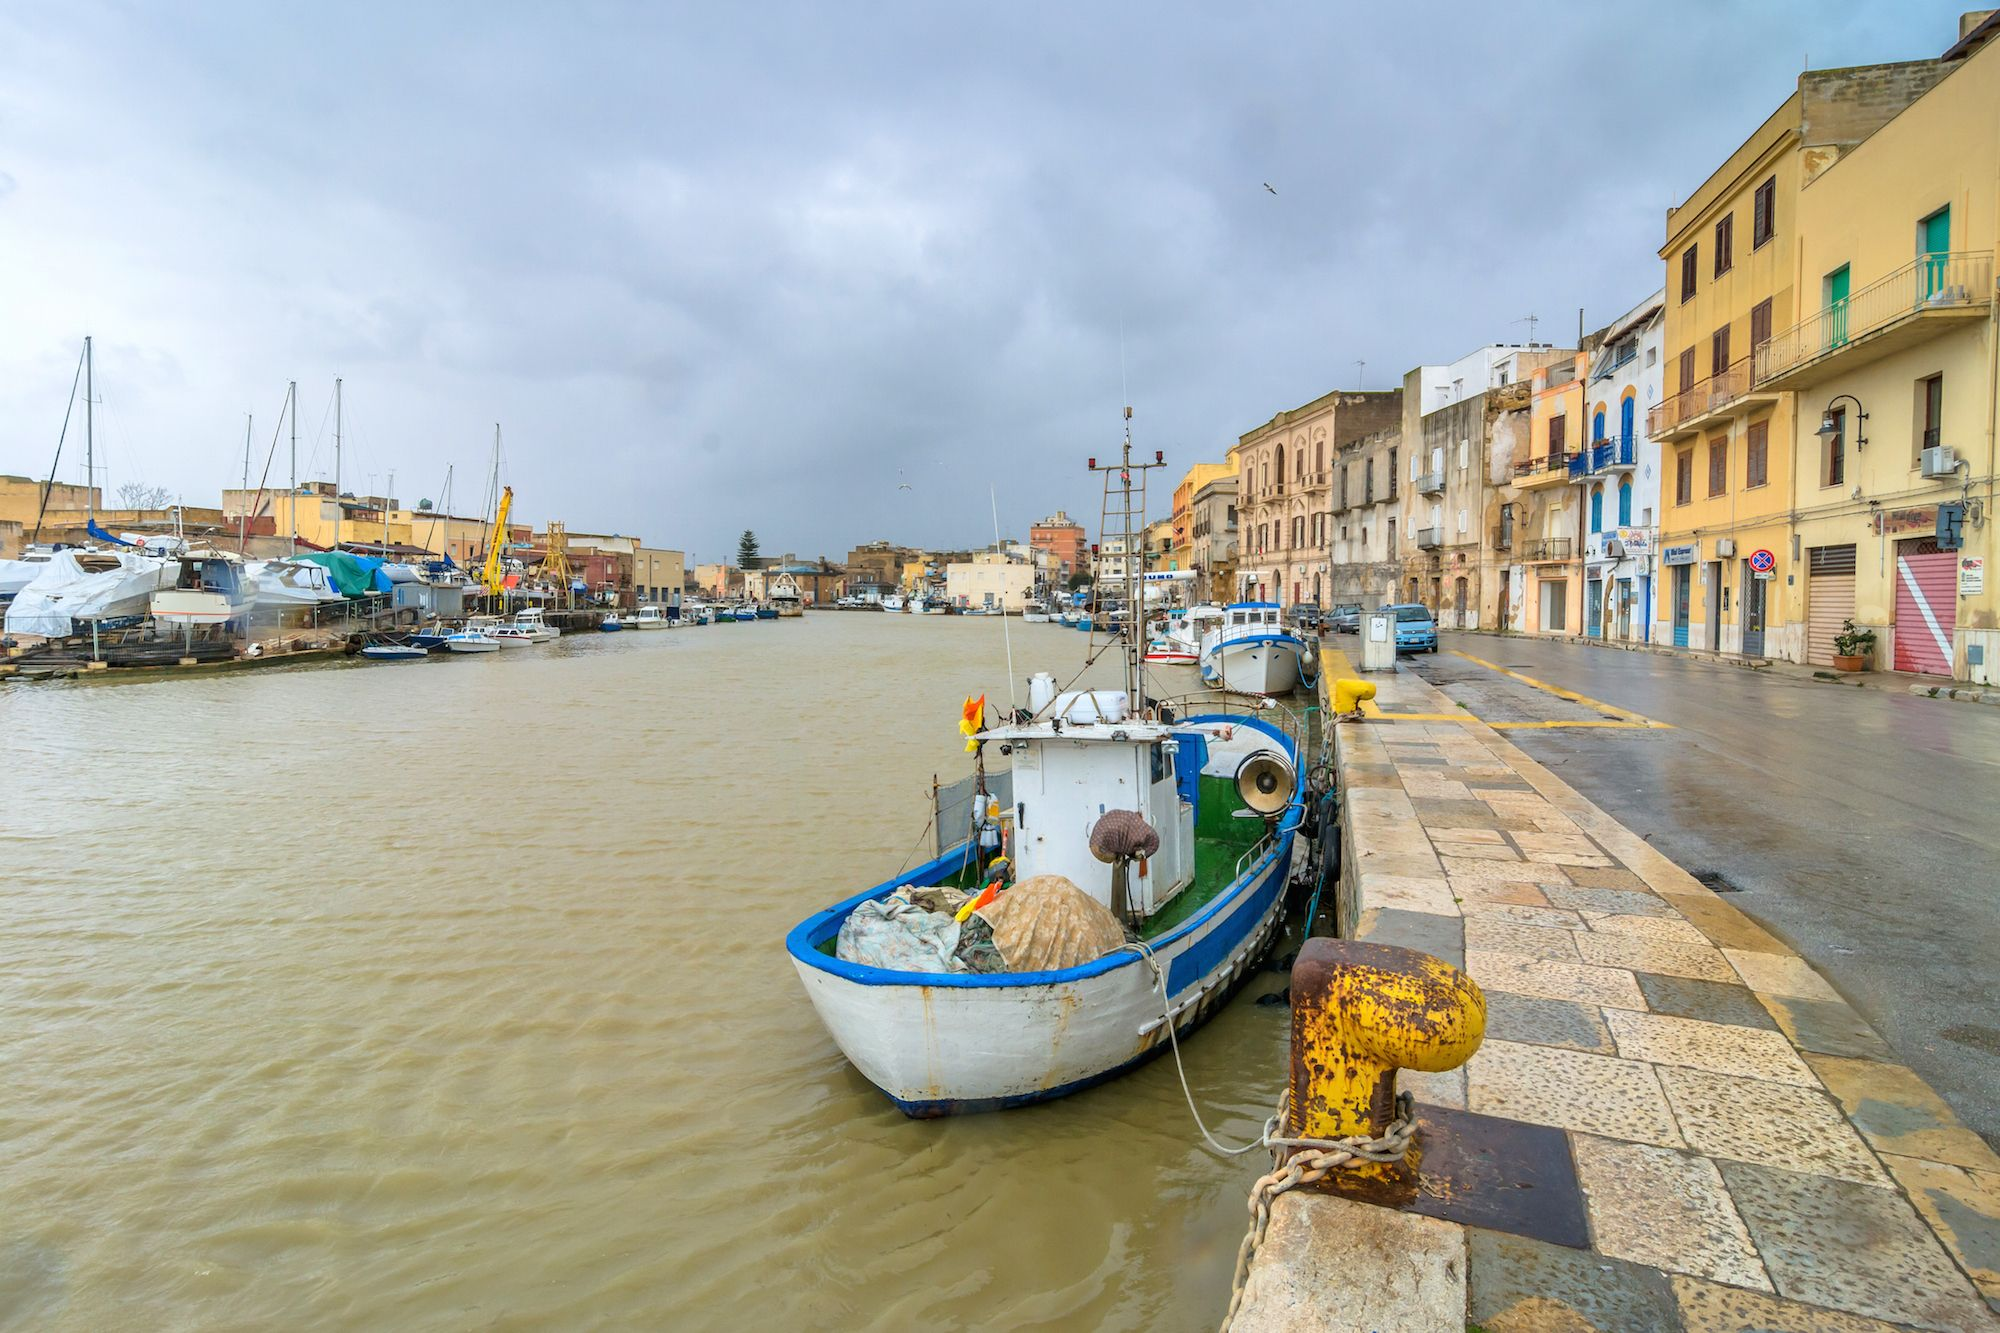 fishing boats and canal in Mazara del Vallo, Sicily